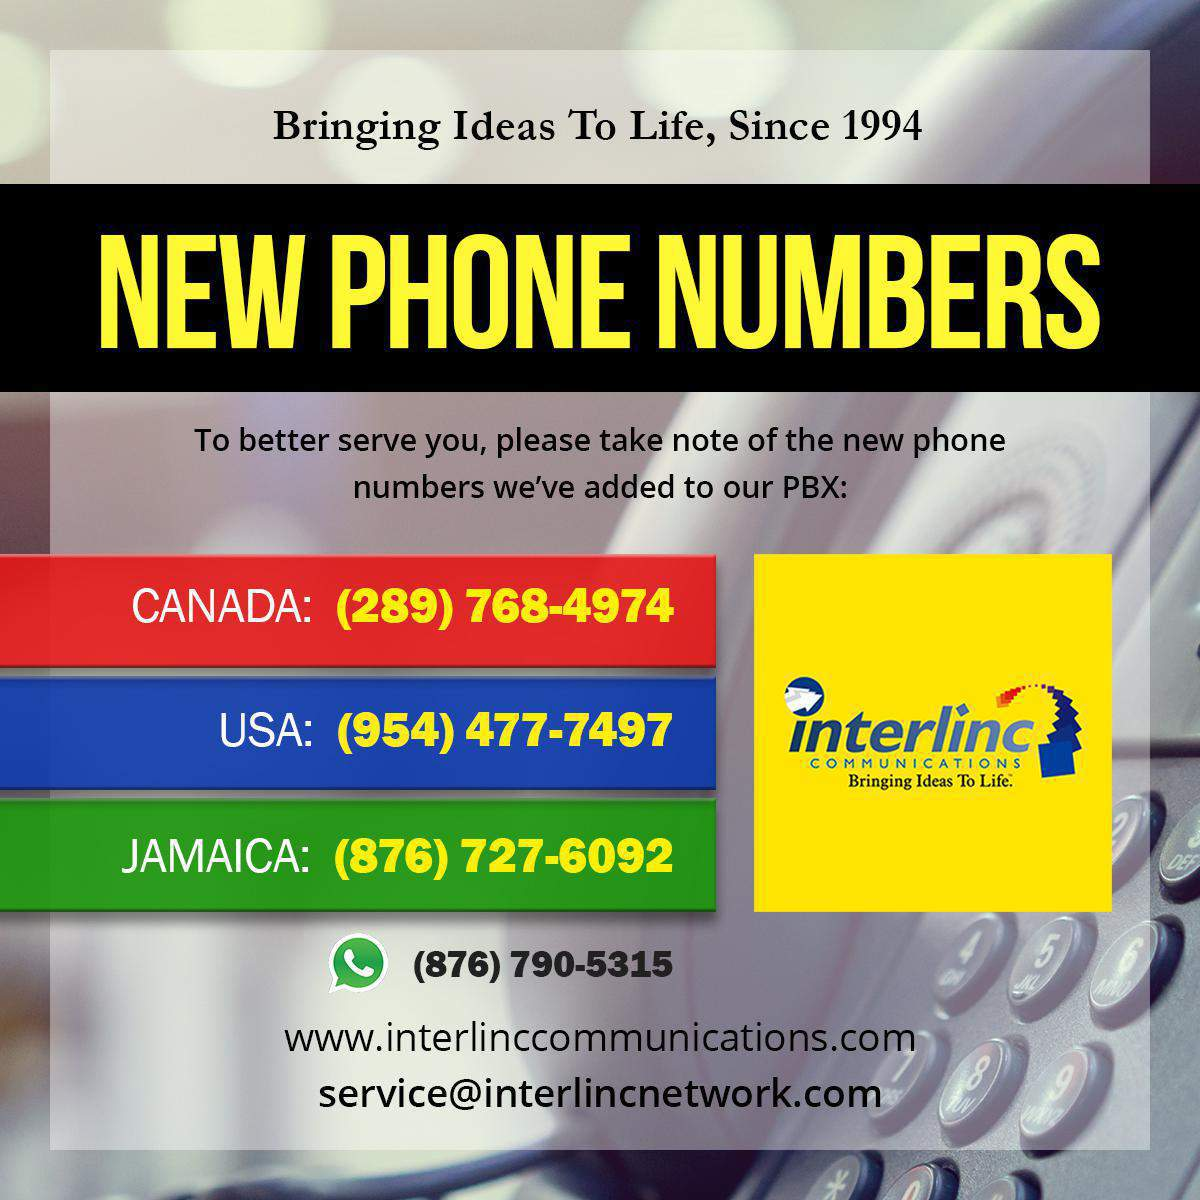 New Phone Numbers and Contacts for Interlinc Communications